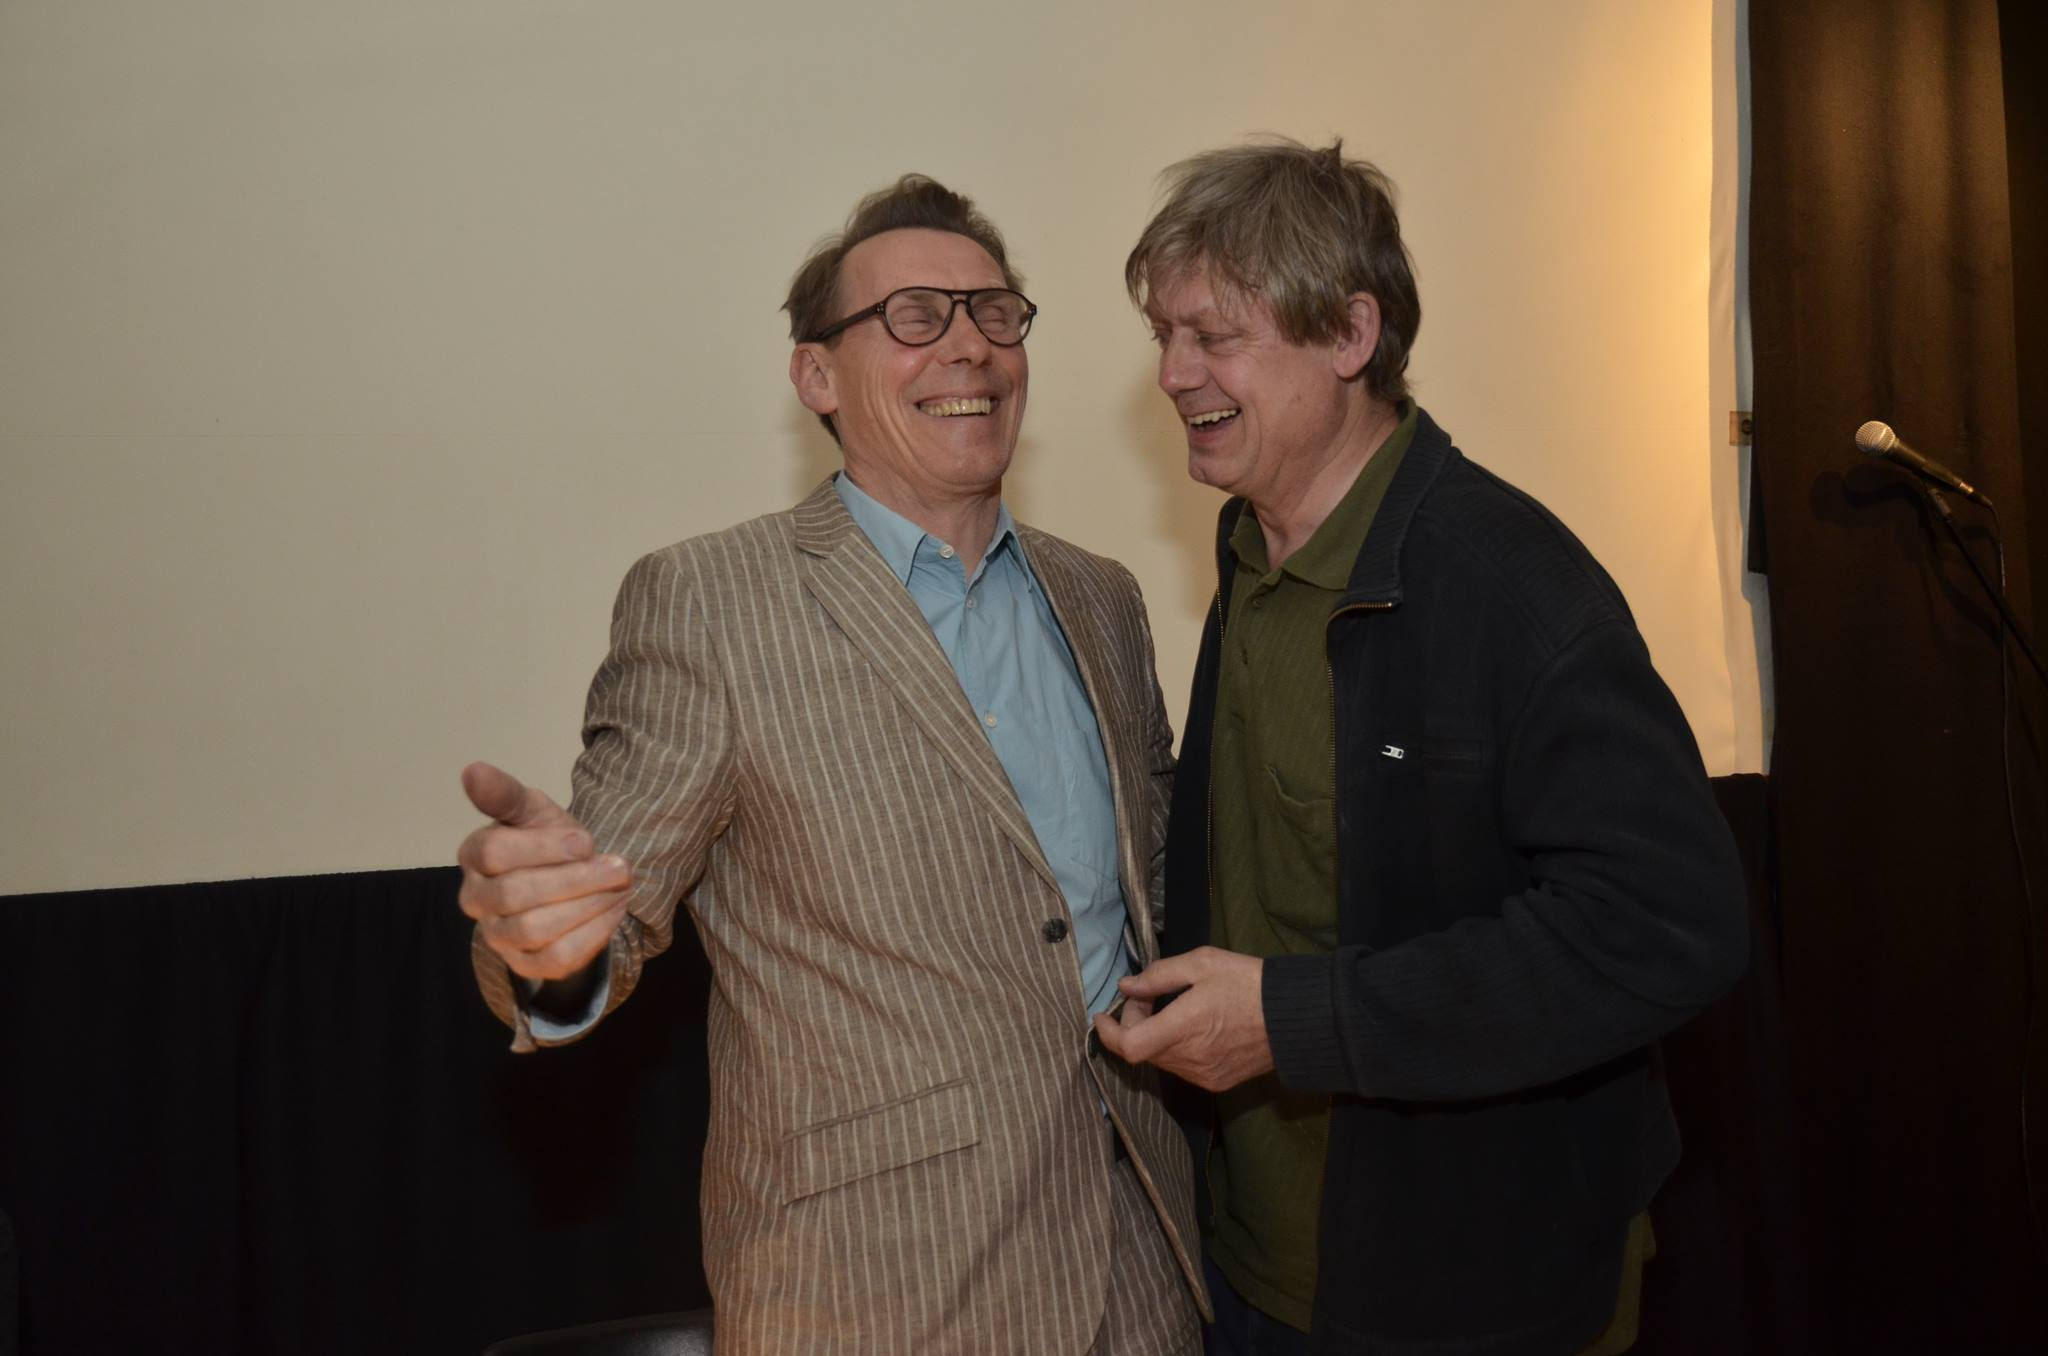 Will and Graham Fellows